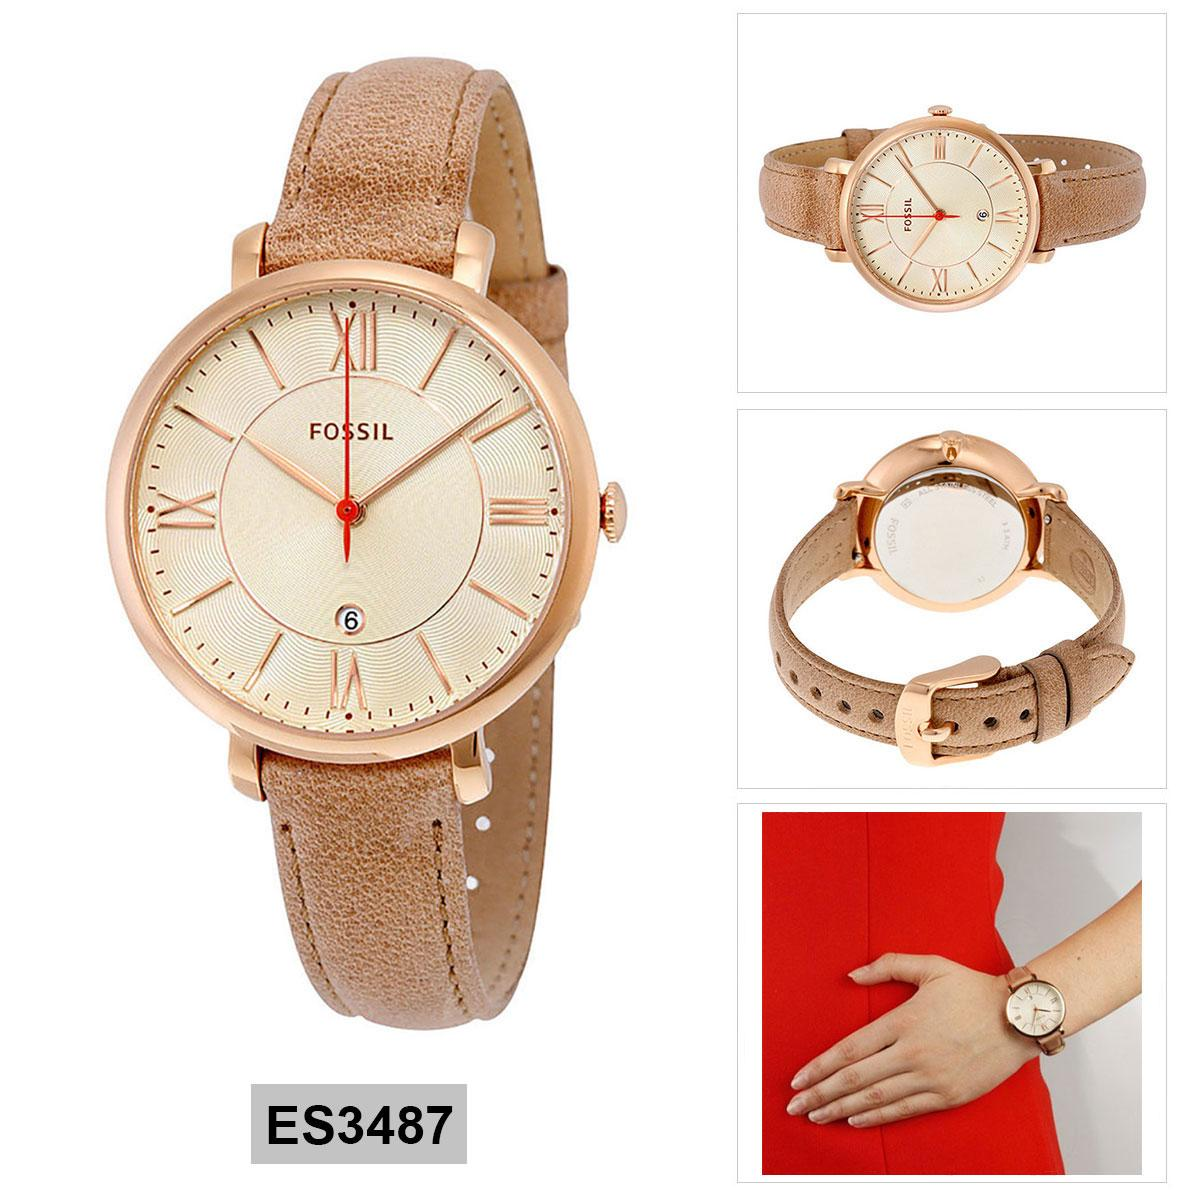 Fossil Watch Jacqueline Brown Stainless Steel Case Jam Tangan Wanita Ch3016 Abilene Chronograph Light Warranty Only Covers Parts And Labor Where The Problem Arises From Manufacturing Defect Not Under